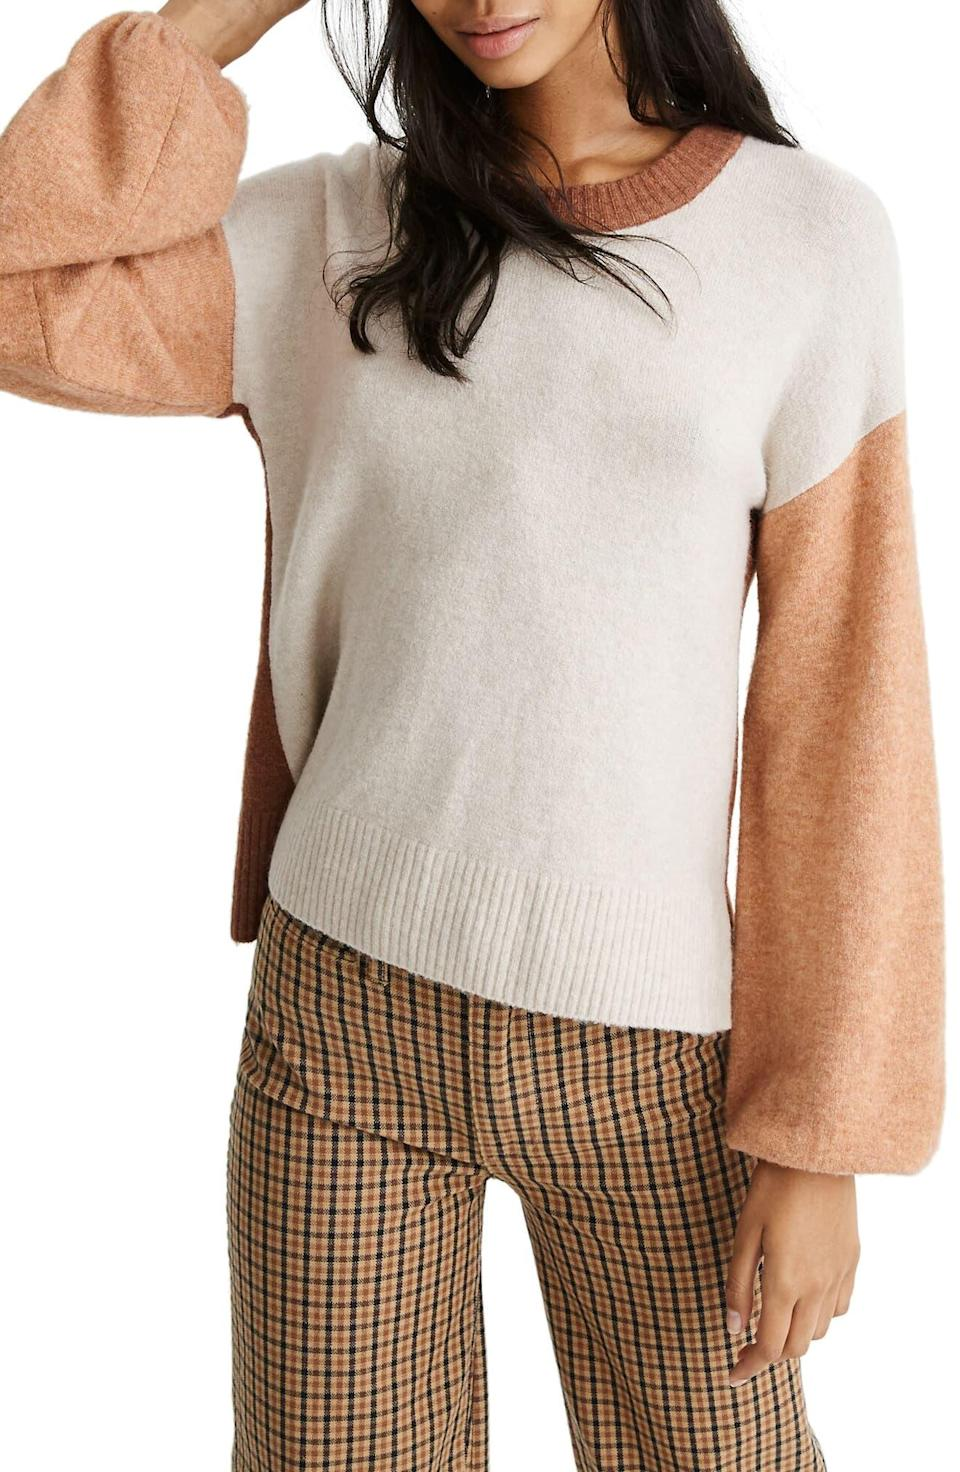 """<p><strong>MADEWELL</strong></p><p>nordstrom.com</p><p><strong>$59.50</strong></p><p><a href=""""https://go.redirectingat.com?id=74968X1596630&url=https%3A%2F%2Fshop.nordstrom.com%2Fs%2Fmadewell-payton-coziest-yarn-colorblock-pullover%2F5339025&sref=http%3A%2F%2Fwww.cosmopolitan.com%2Fstyle-beauty%2Ffashion%2Fg30057282%2Fshop-nordstrom-black-friday-cyber-monday-sale-2019%2F"""" rel=""""nofollow noopener"""" target=""""_blank"""" data-ylk=""""slk:Shop Now"""" class=""""link rapid-noclick-resp"""">Shop Now</a></p><p>Why choose just one hue when you can get this Madewell sweater that has three? And because they're various shades of tan and cream (aka neutrals), you'll wear this guy with everything.</p>"""